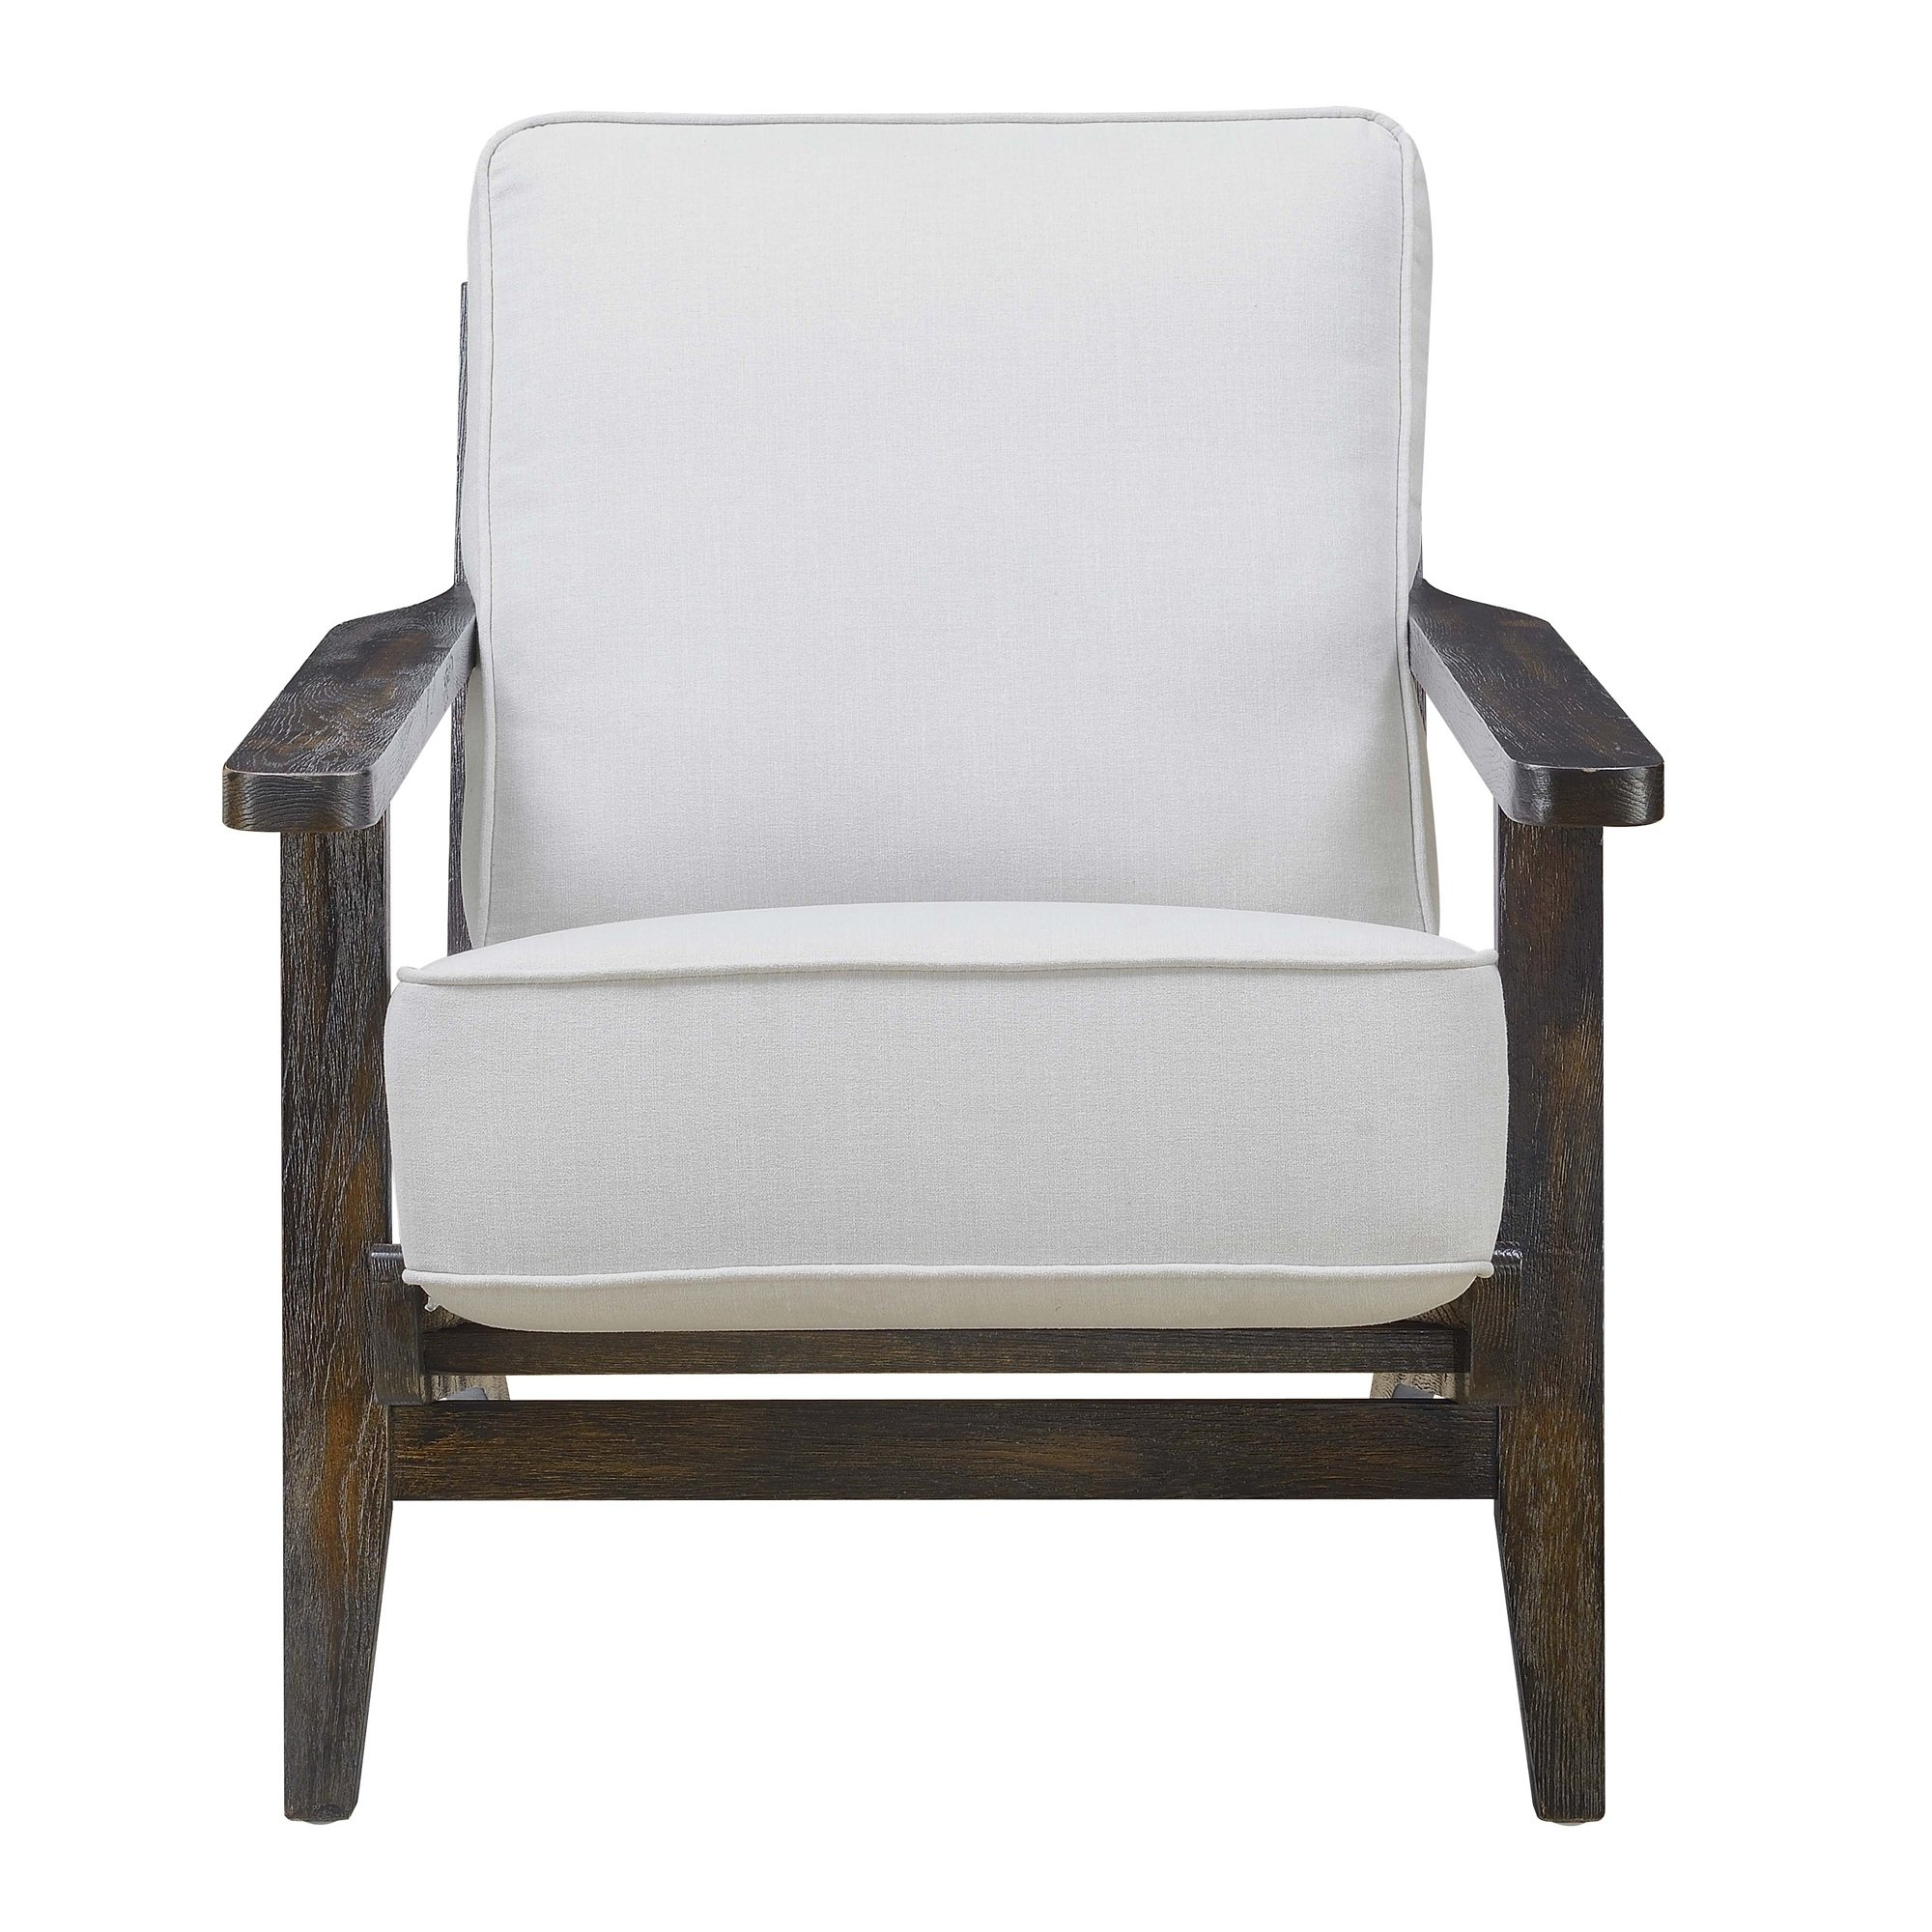 Picket House Furnishings Mercer Accent Chair In Onyx W/ Espresso Regarding Mercer Foam Swivel Chairs (View 10 of 25)